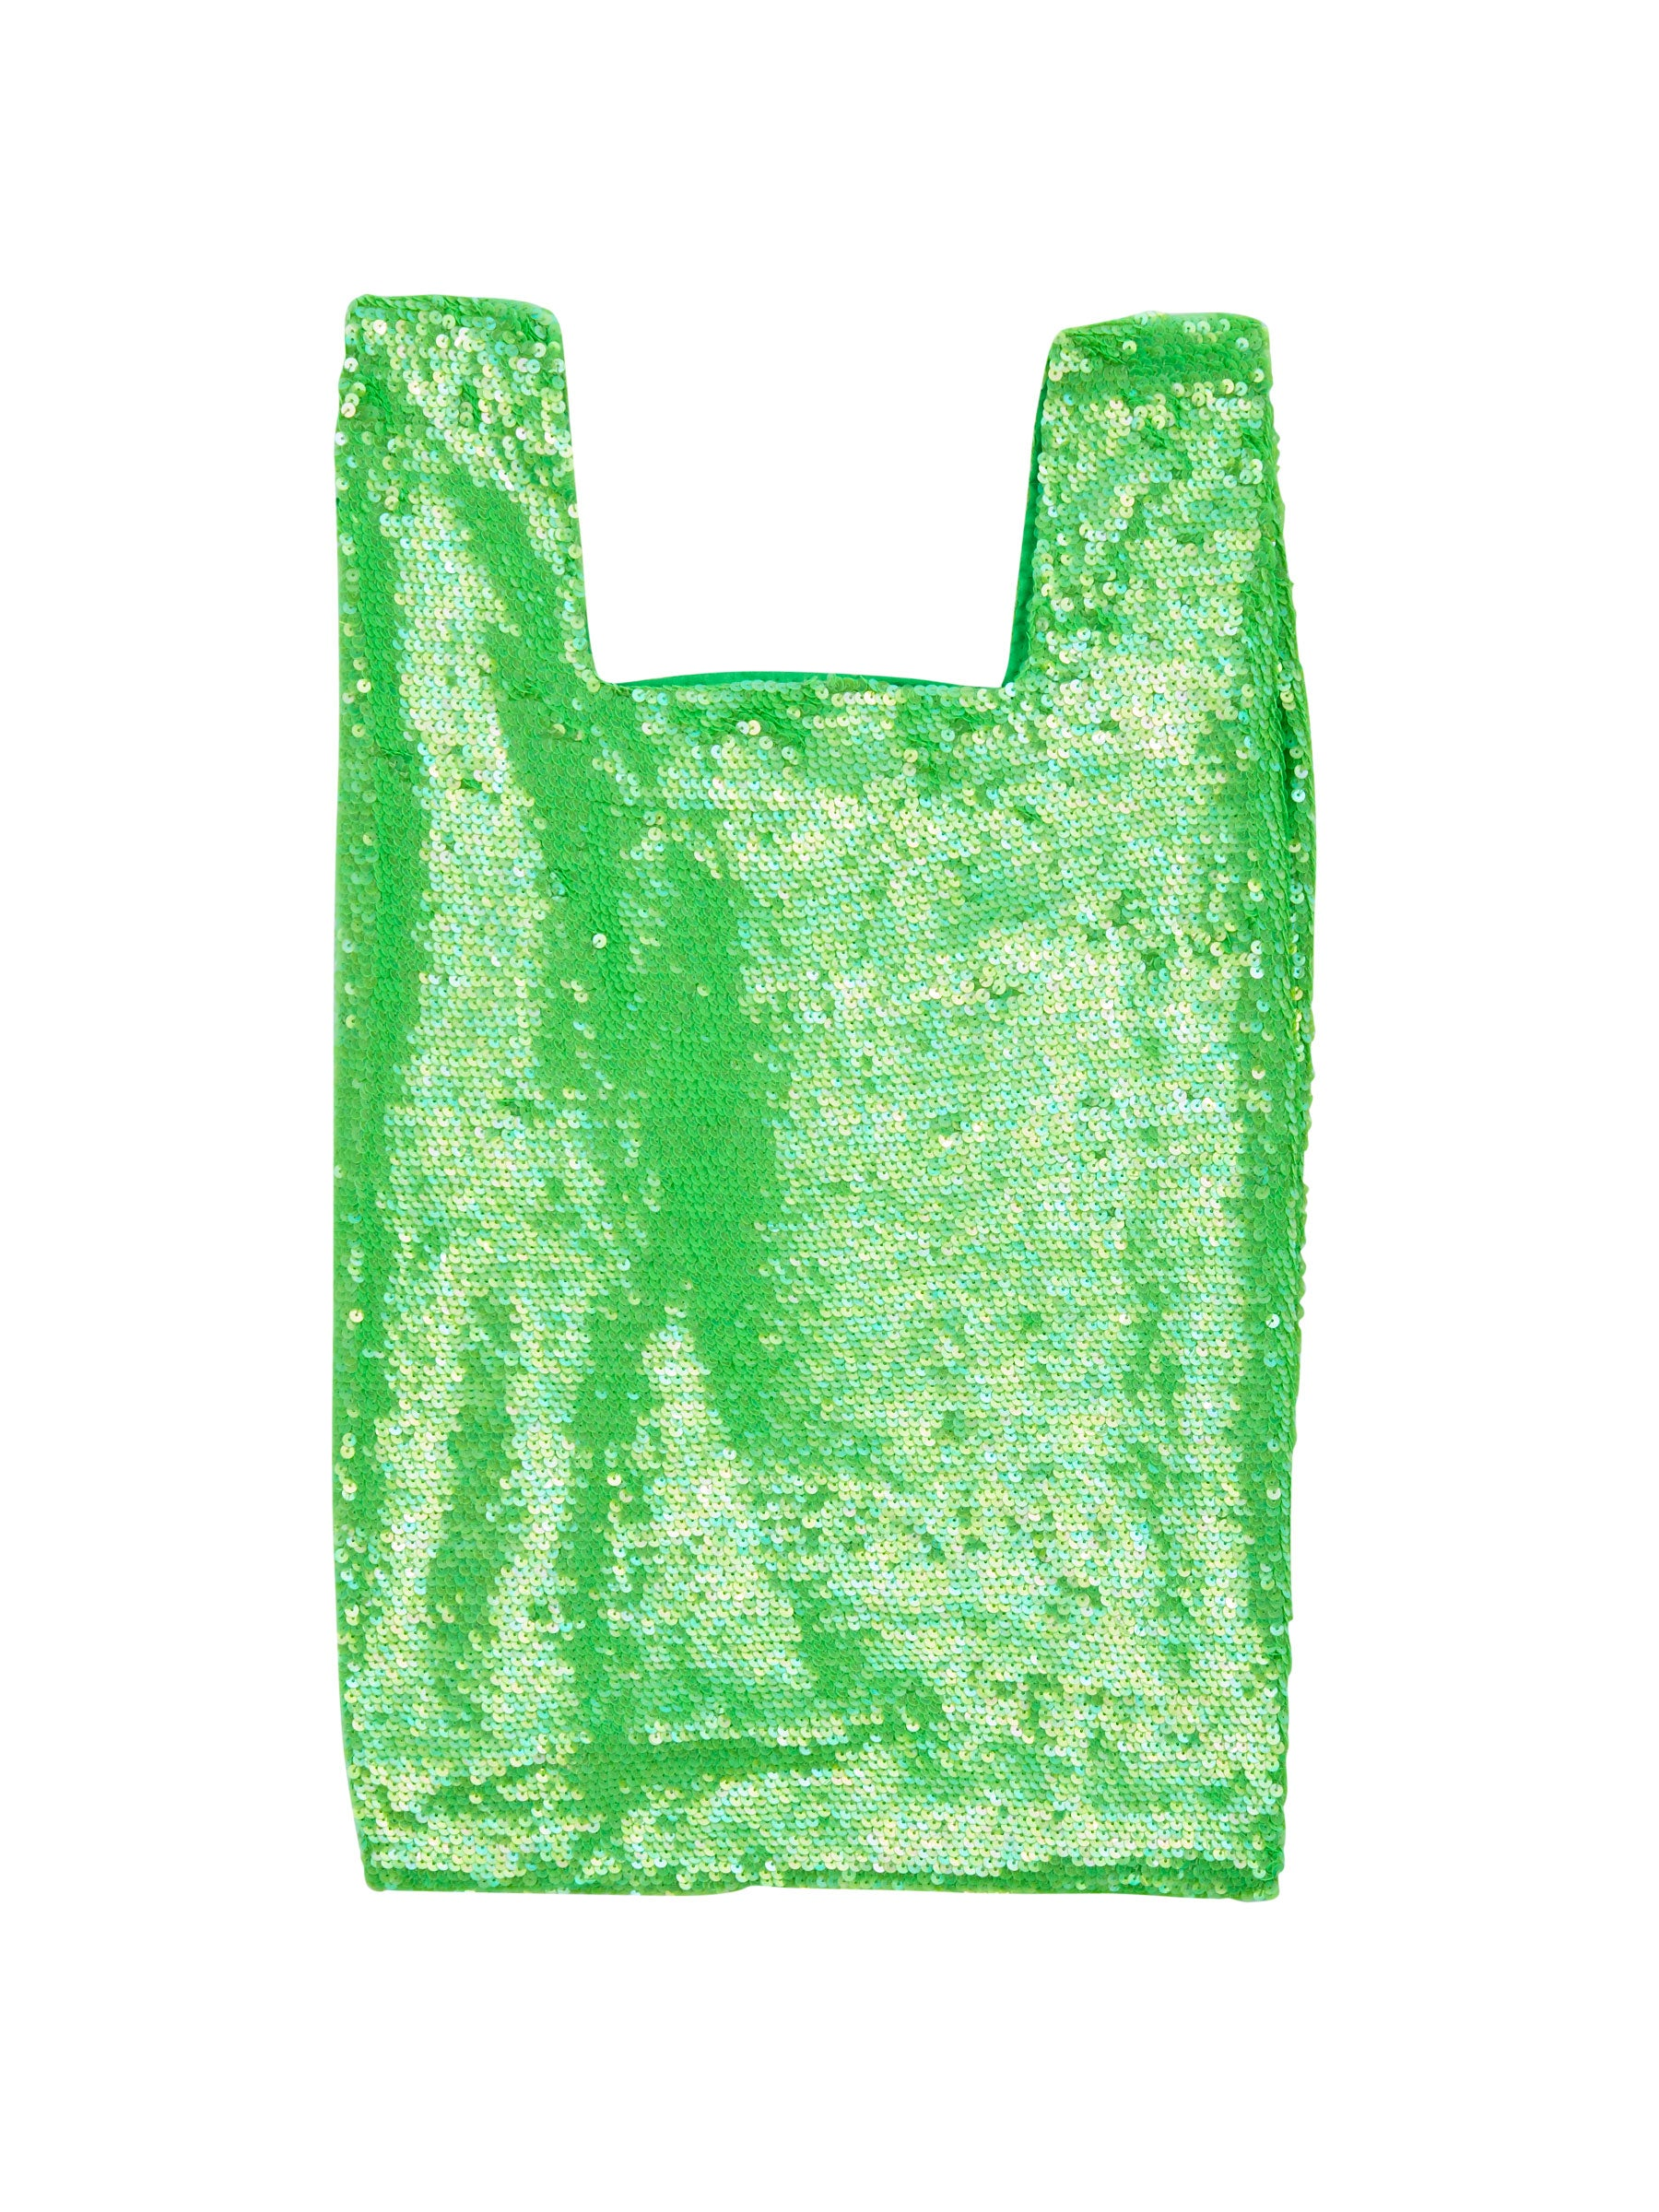 odd92 Ashish Sequin Shopper Bag Green Spring/Summer 2019 - 1